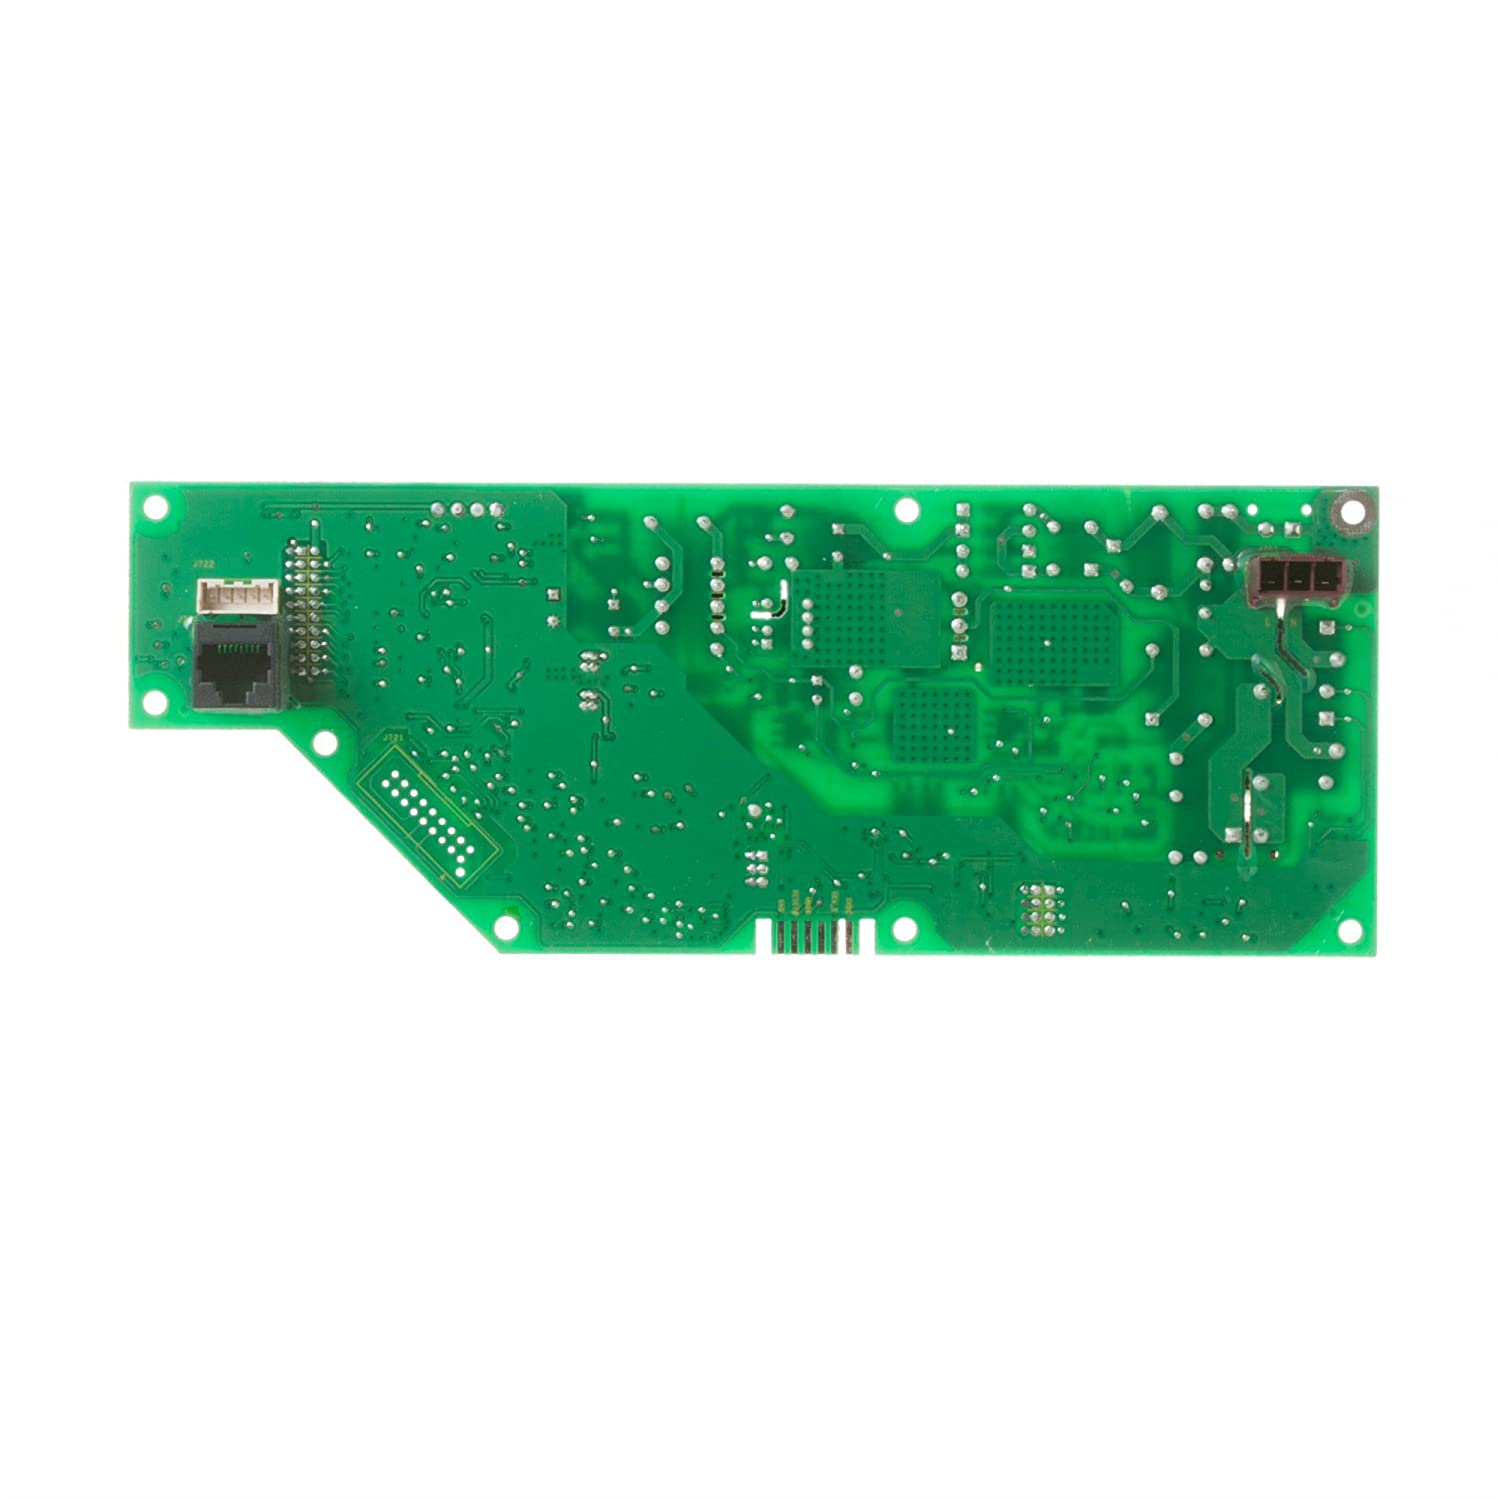 Ge WD21X20721 Dishwasher Electronic Control Board Genuine Original Equipment Manufacturer (OEM) Part